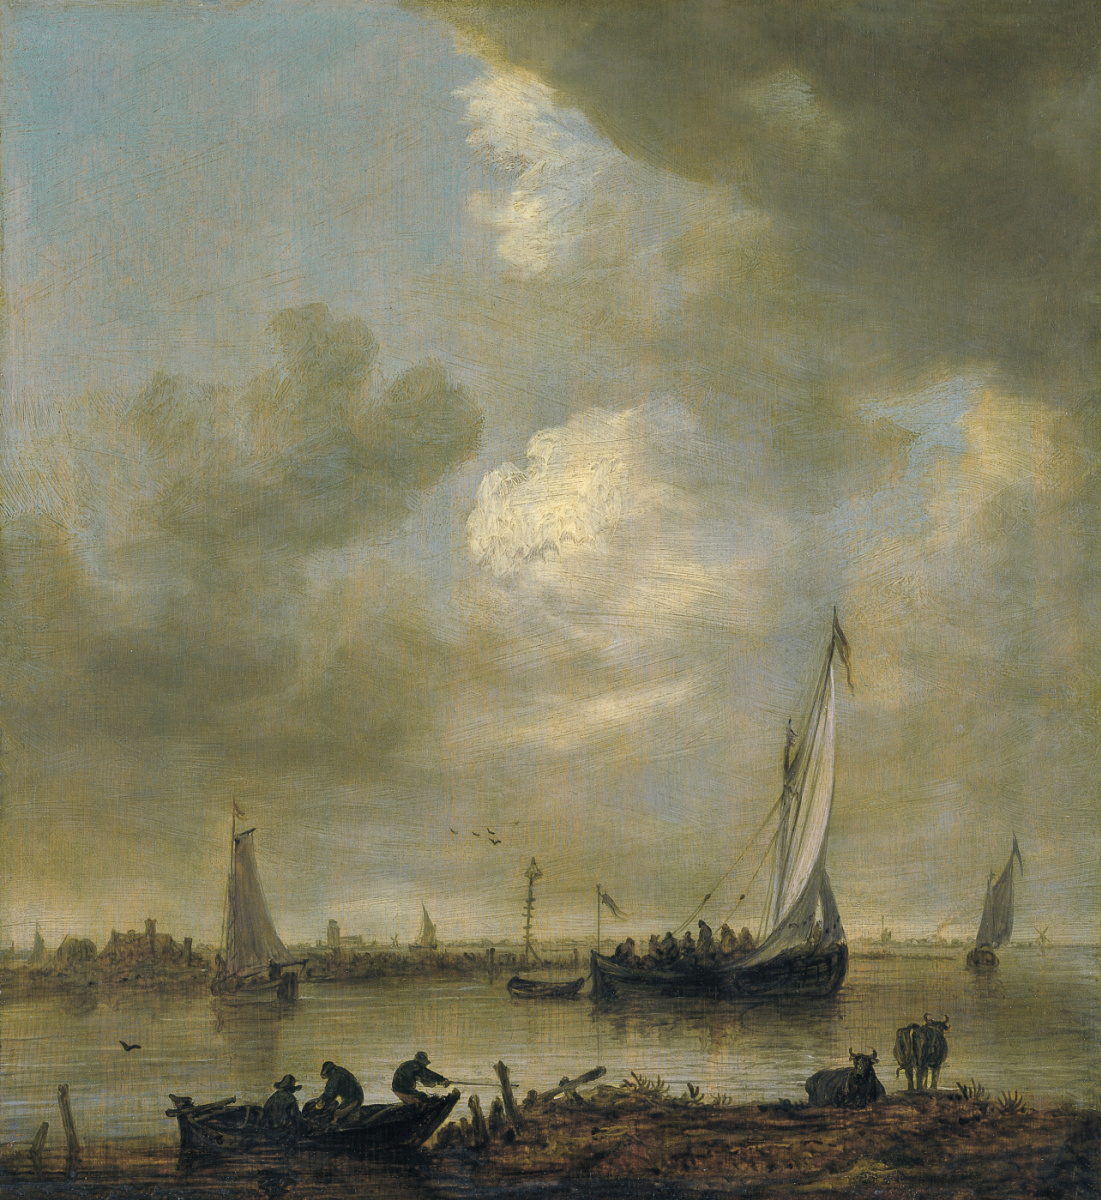 Jan van Goyen. The mouth of the river with small vessels and fishermen